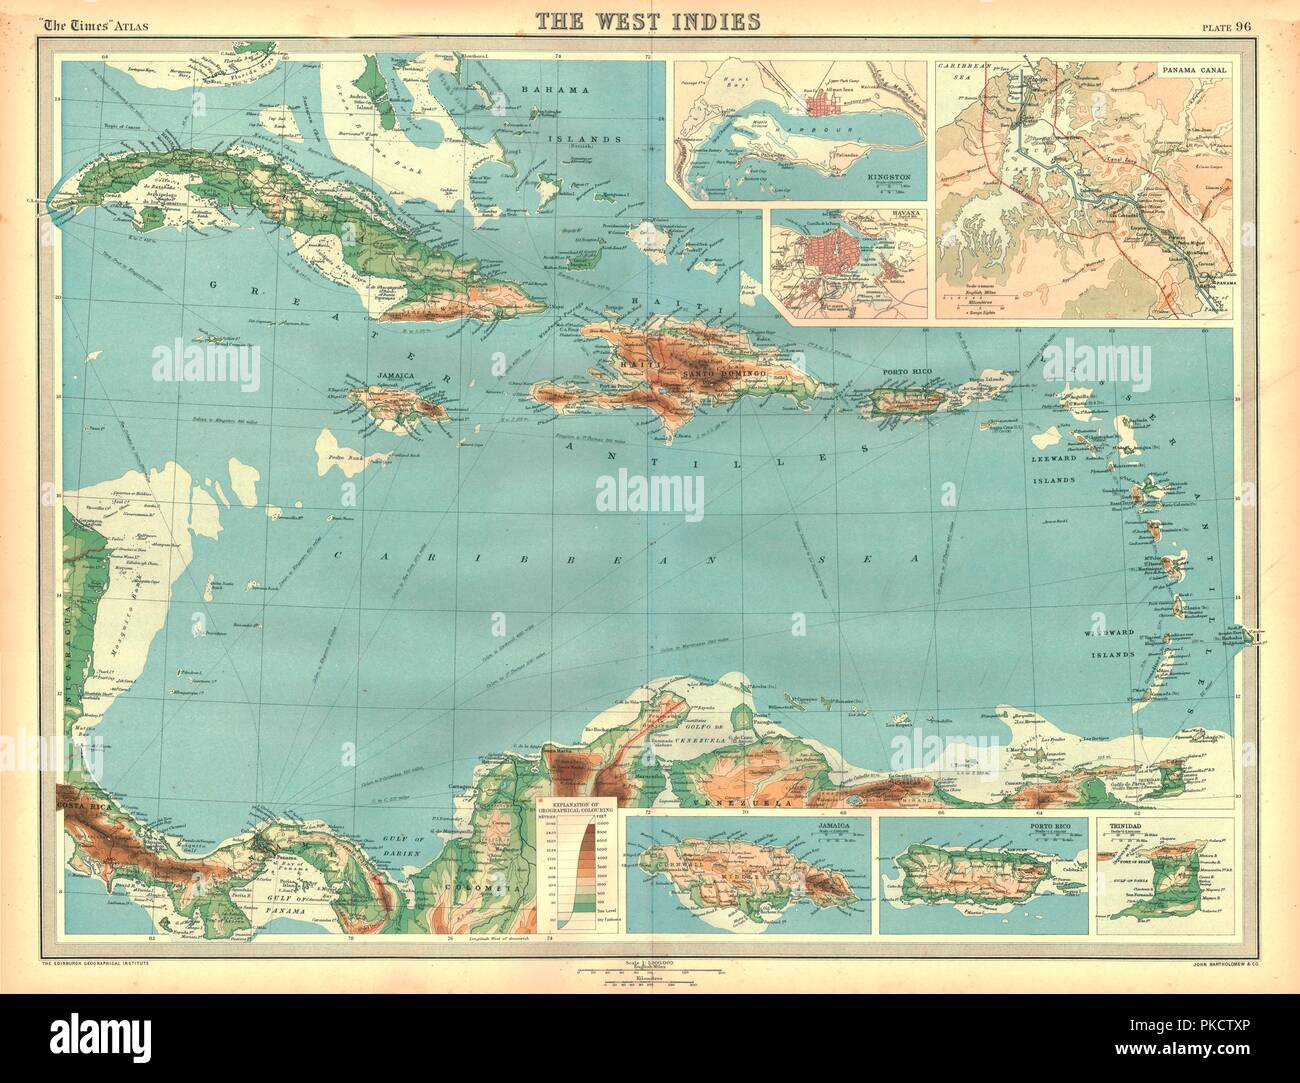 West Indies Map Stock Photos & West Indies Map Stock Images ...